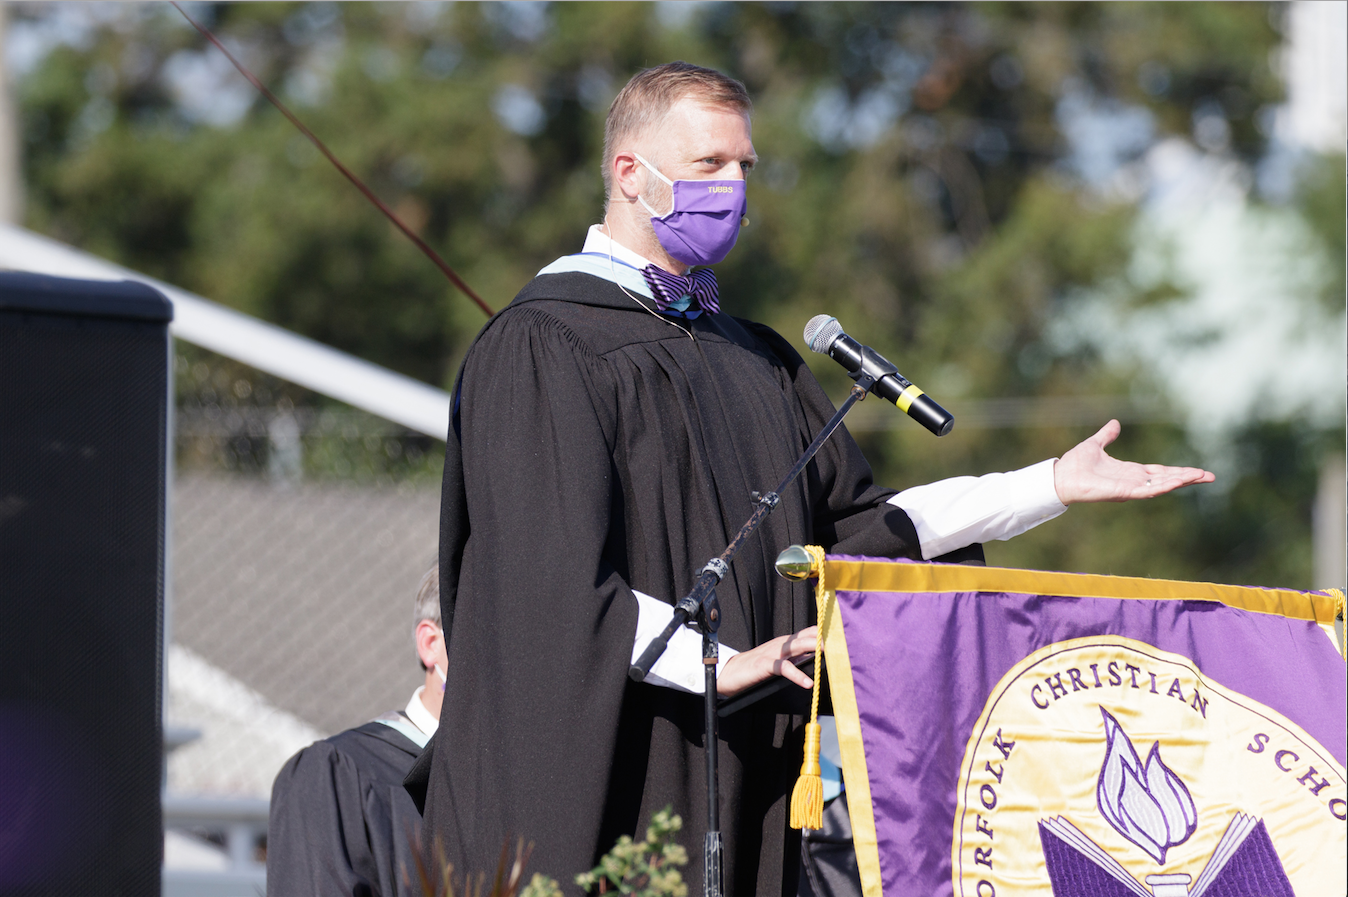 Norfolk Christian Head of School Dan Tubbs